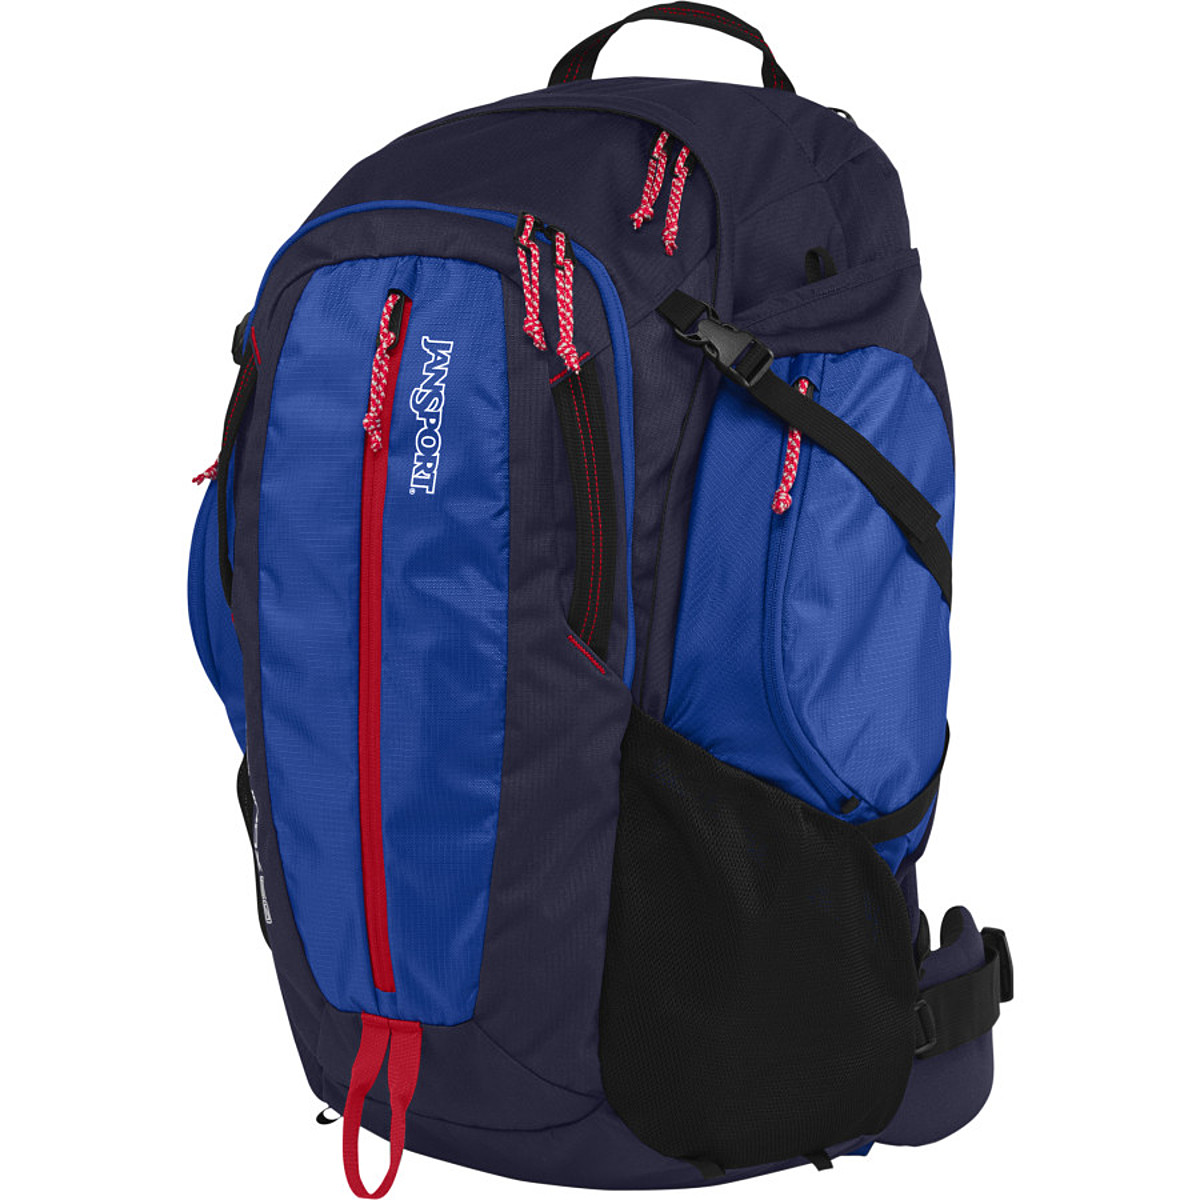 JanSport Equinox 50